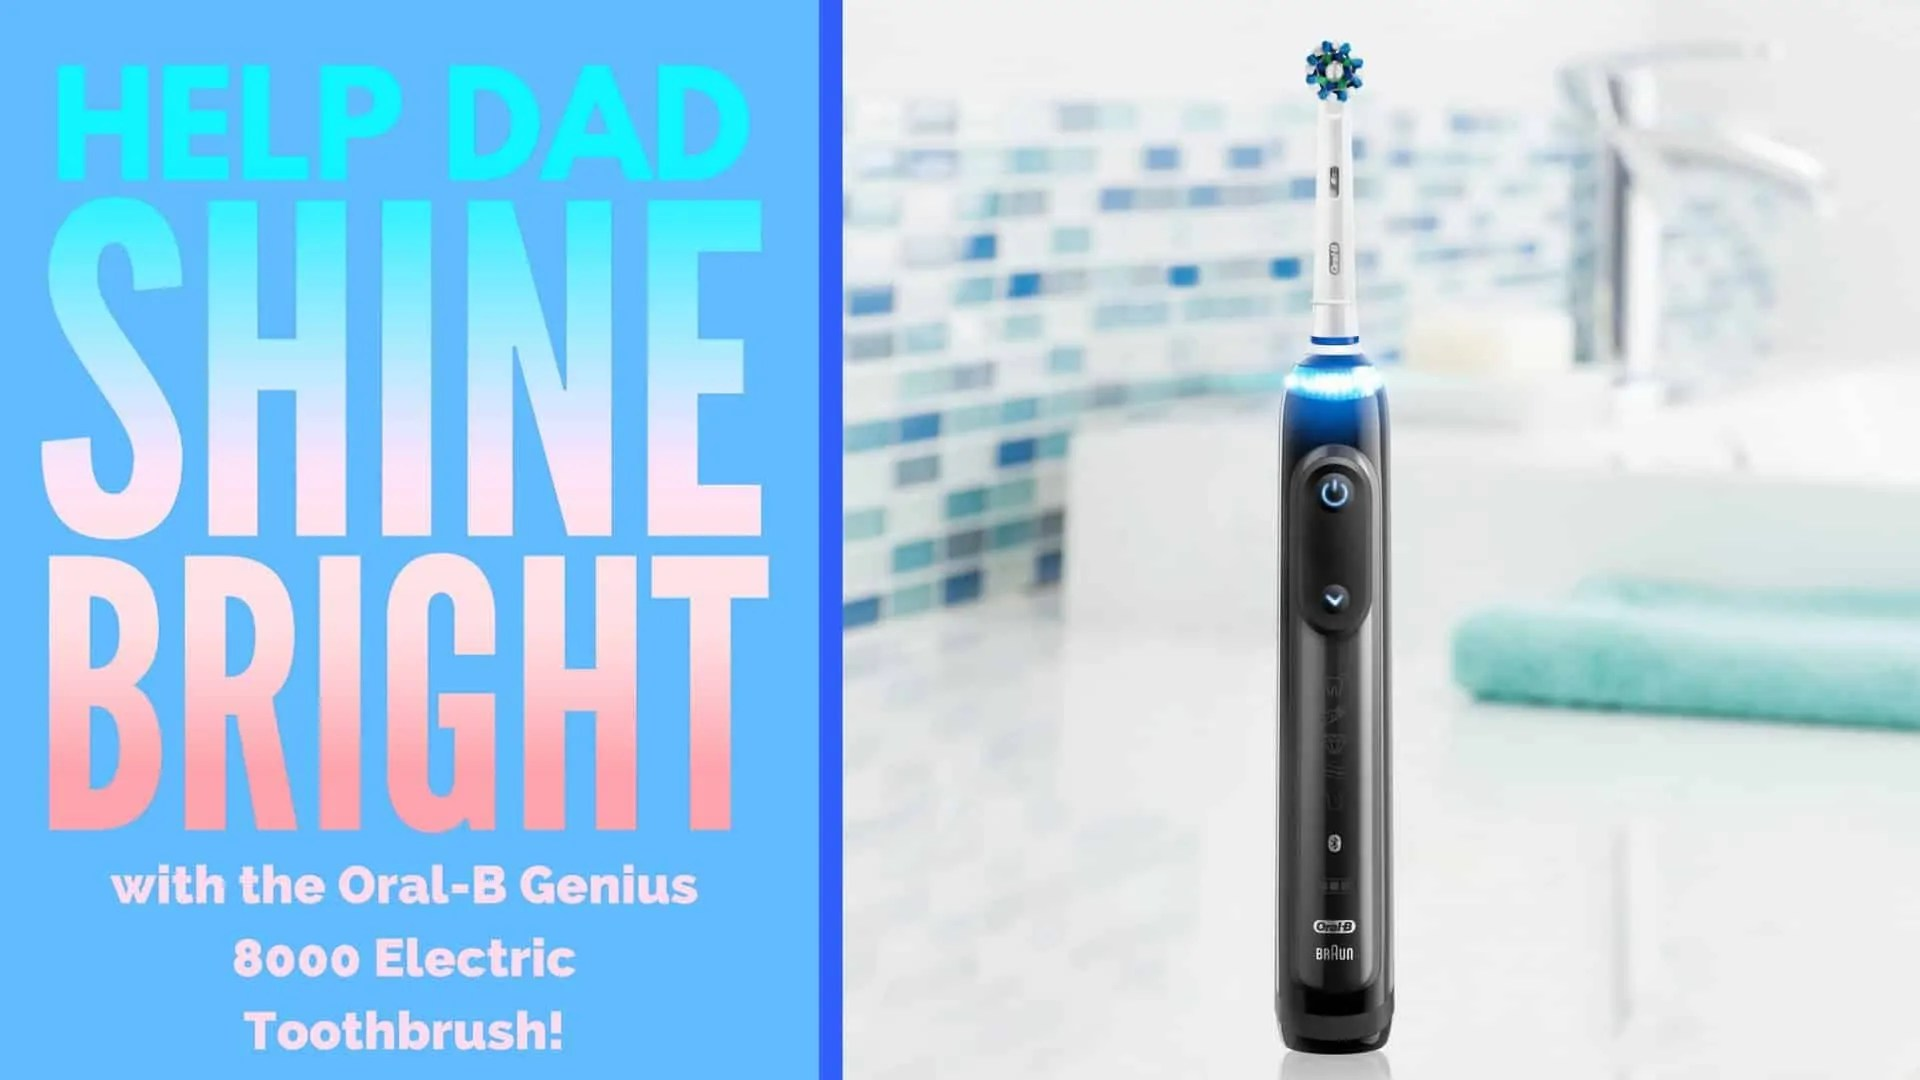 Help Dad Shine Bright with the Oral-B Genius 8000 Electric Toothbrush! (Featured Image)